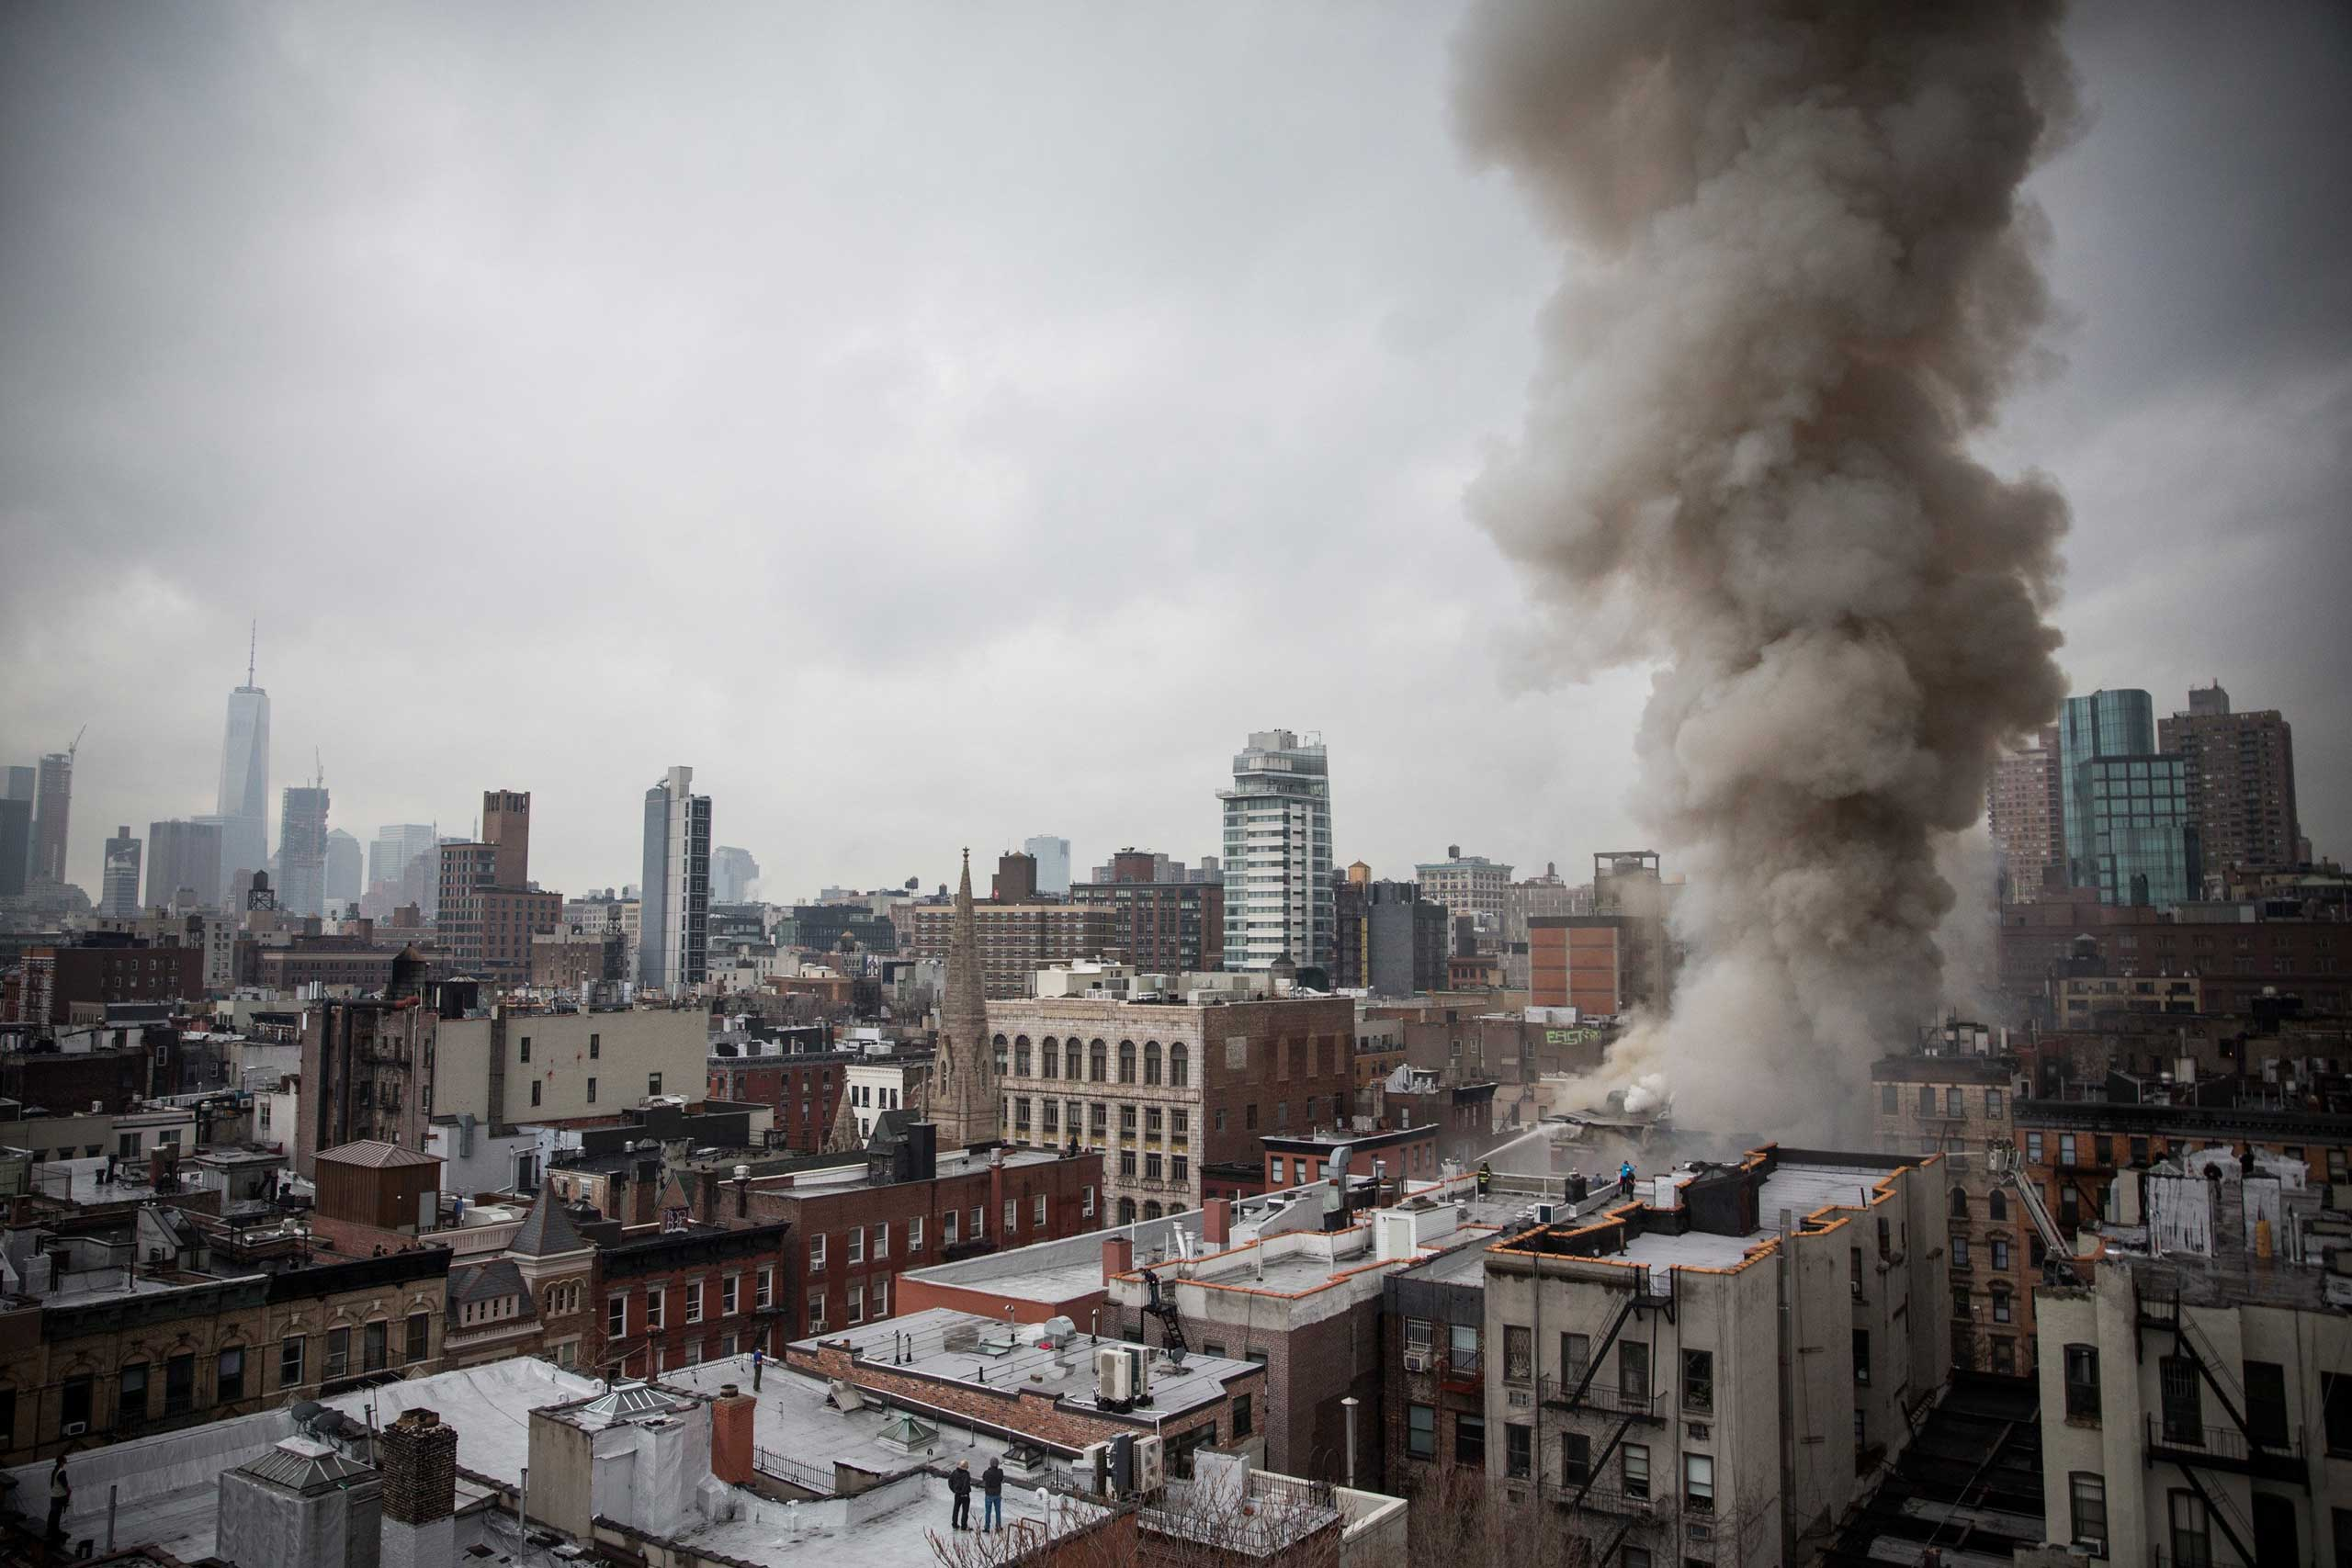 Smoke rises from a burning building after a collapse on 2nd Avenue in the East Village section of New York City on March 26, 2015.